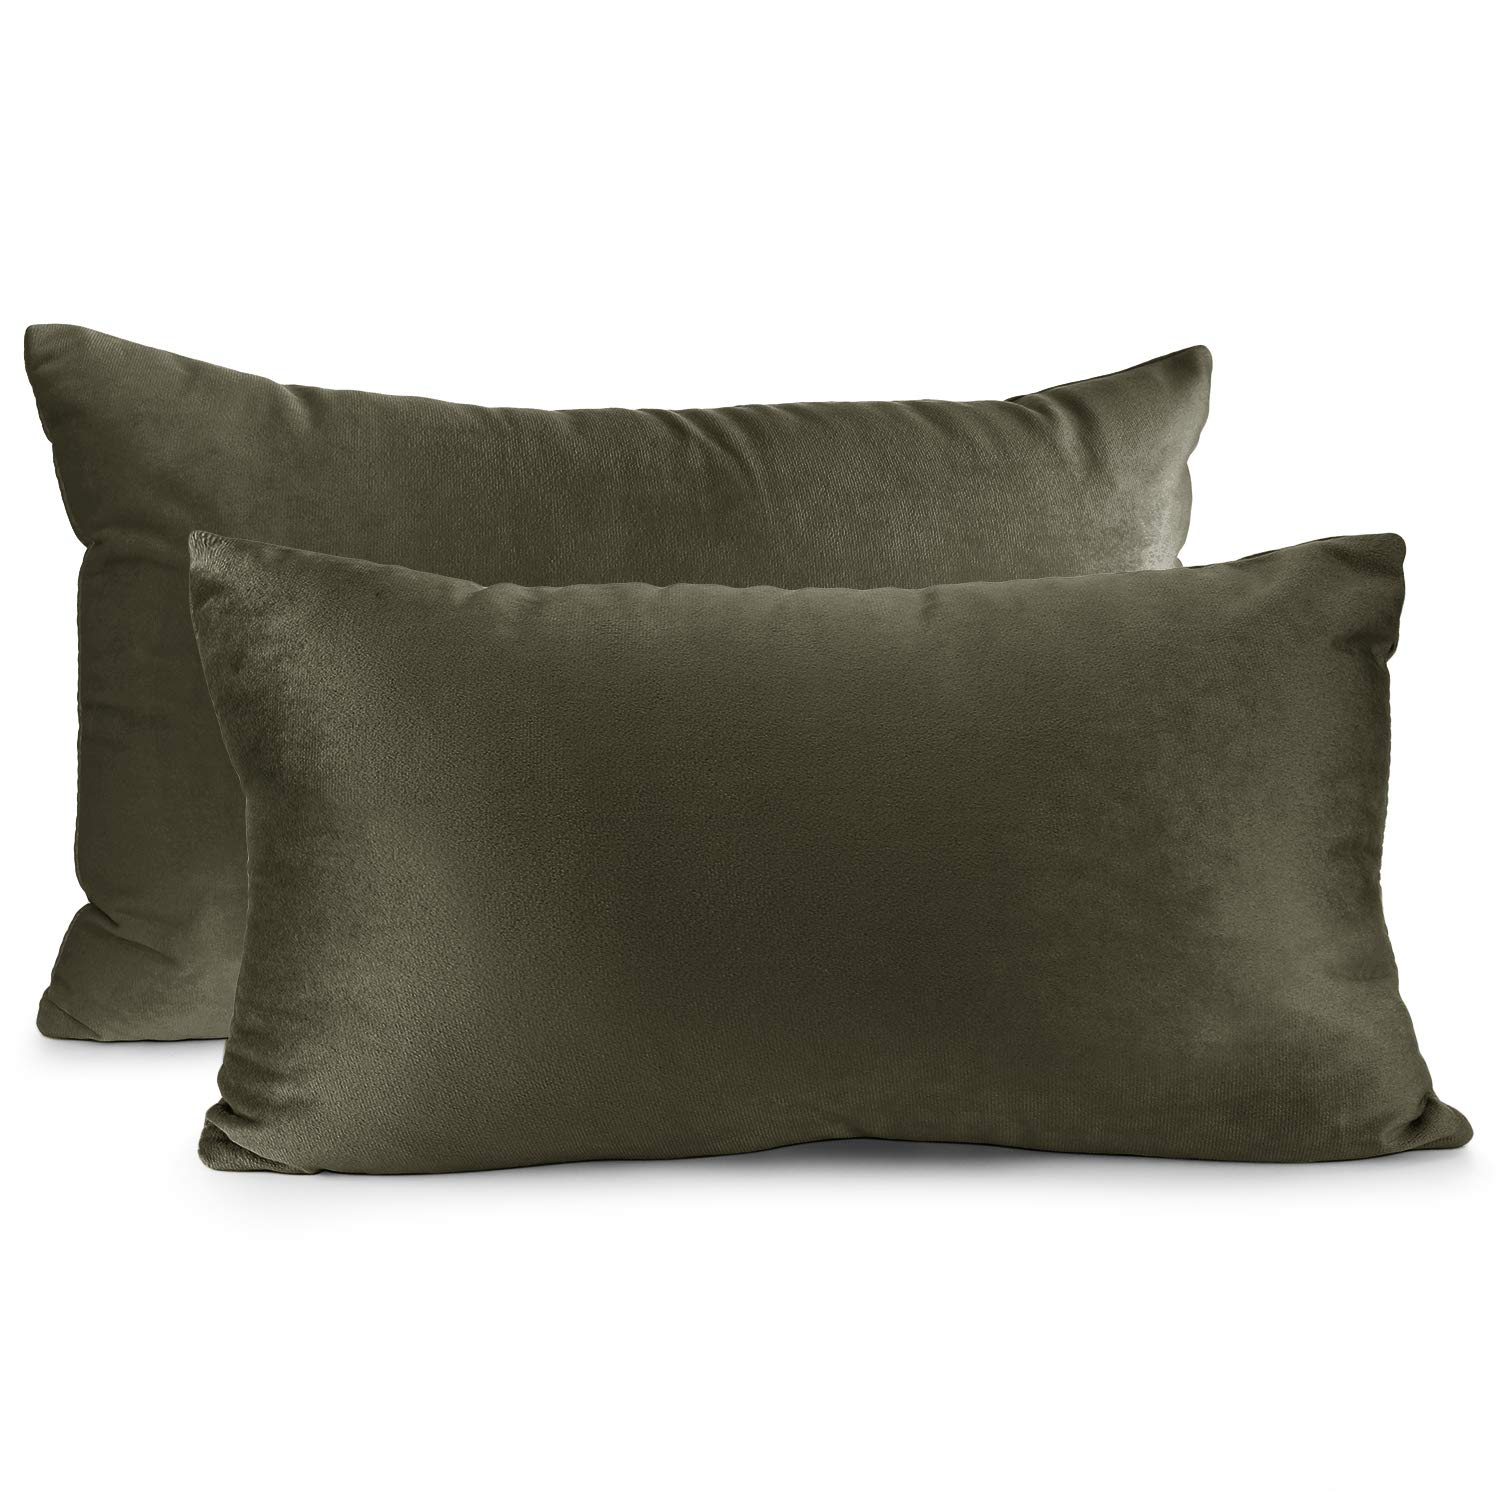 """Nestl Bedding Throw Pillow Cover 12"""" x 20"""" Soft Square Decorative Throw Pillow Covers Cozy Velvet Cushion Case for Sofa Couch Bedroom, Set of 2, Khaki"""